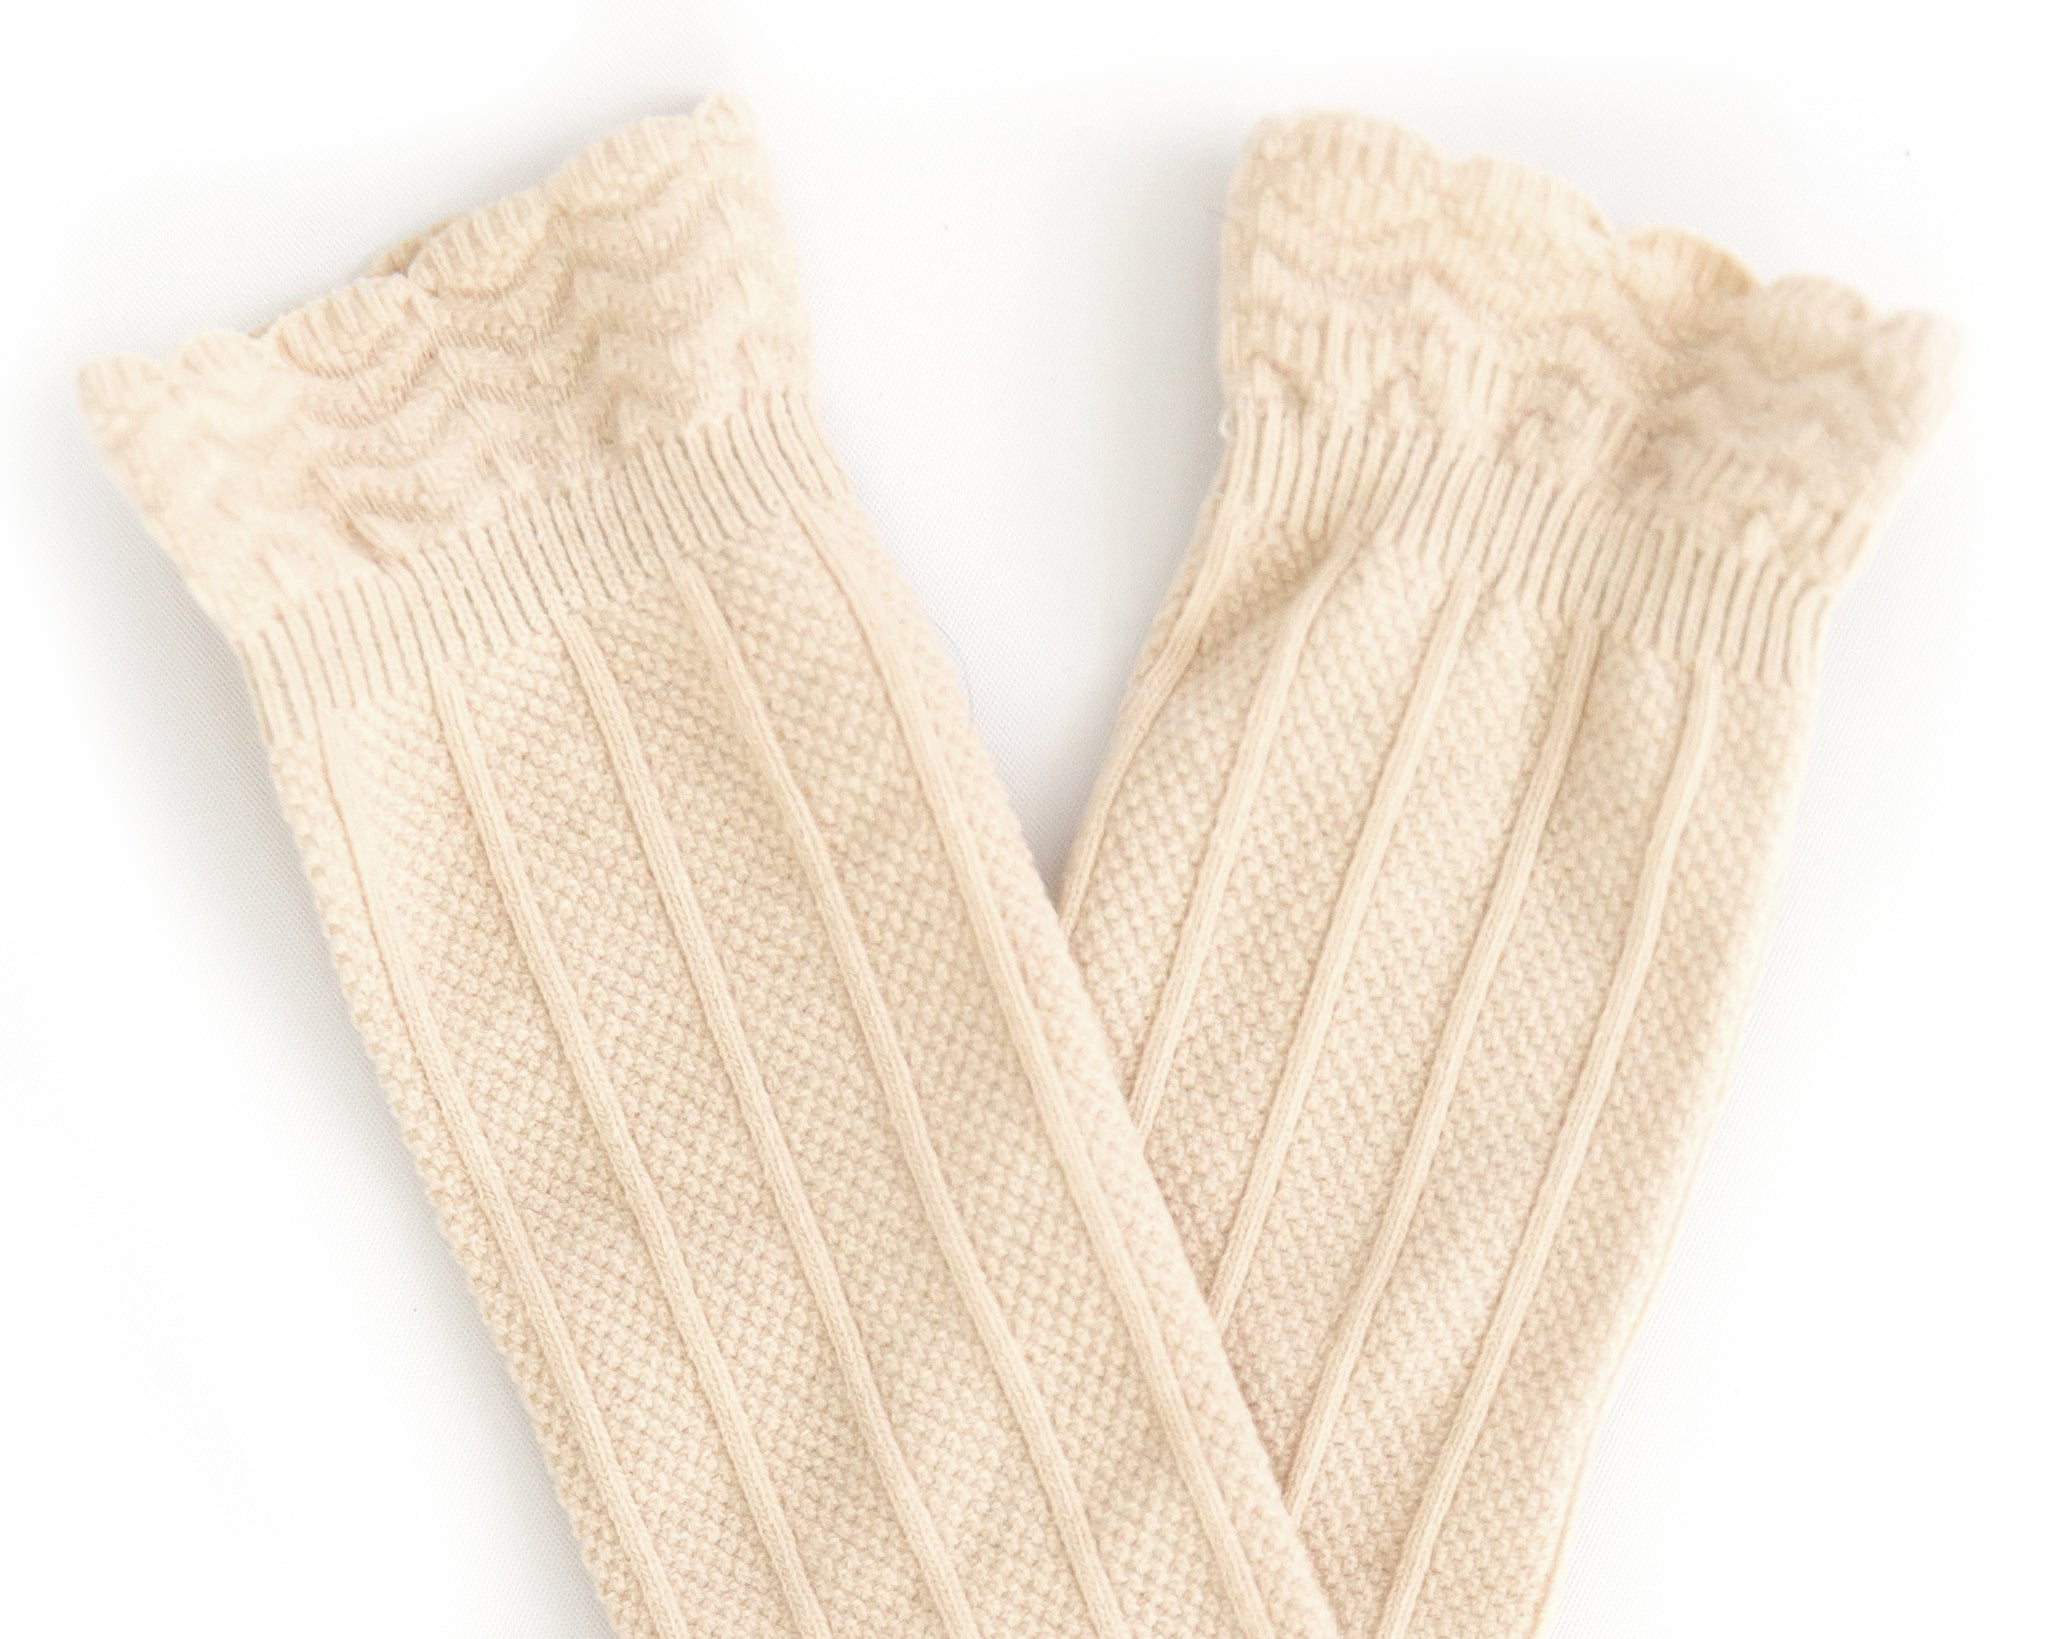 Knee High Socks in Beige - Reverie Threads